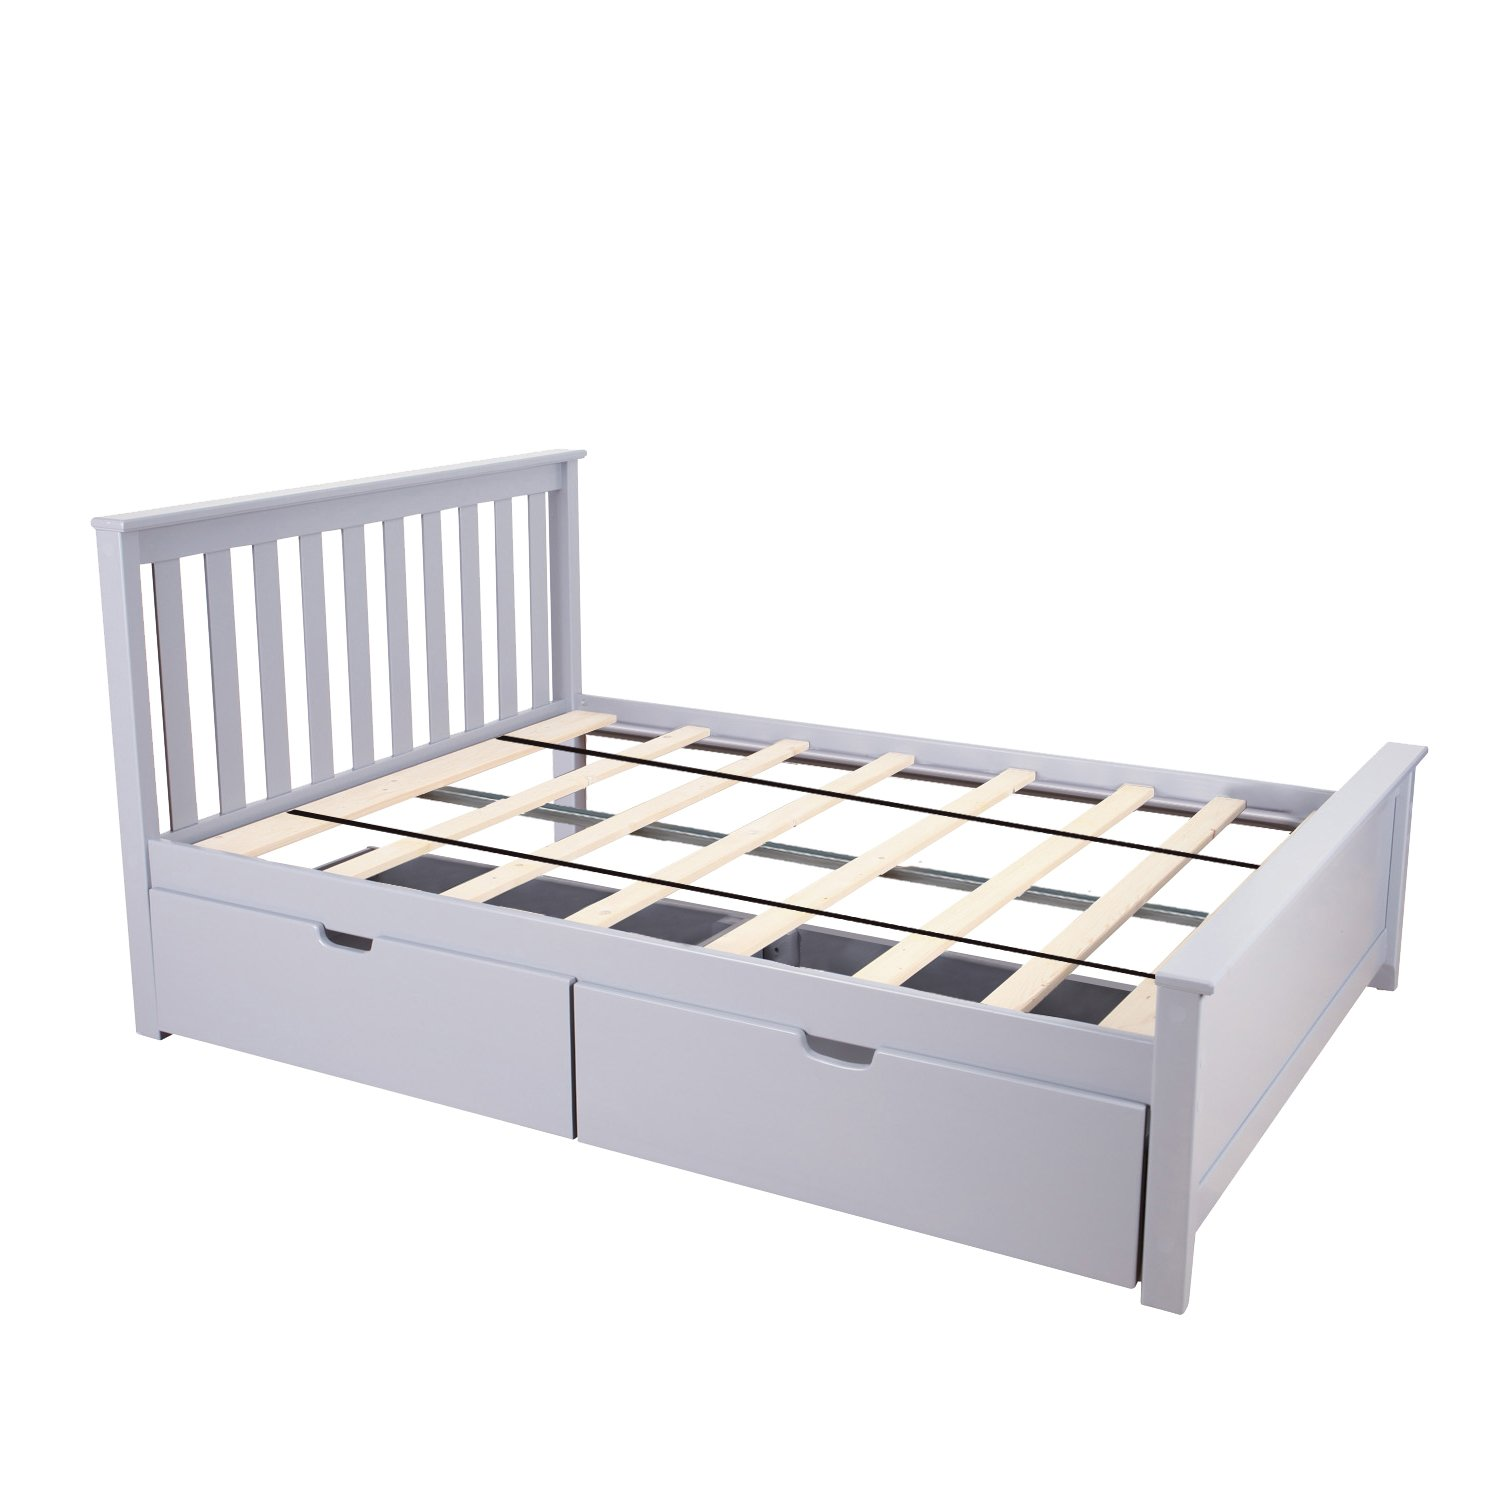 Astounding Max Lily Solid Wood Full Size Bed With Under Bed Storage Drawers Grey Caraccident5 Cool Chair Designs And Ideas Caraccident5Info